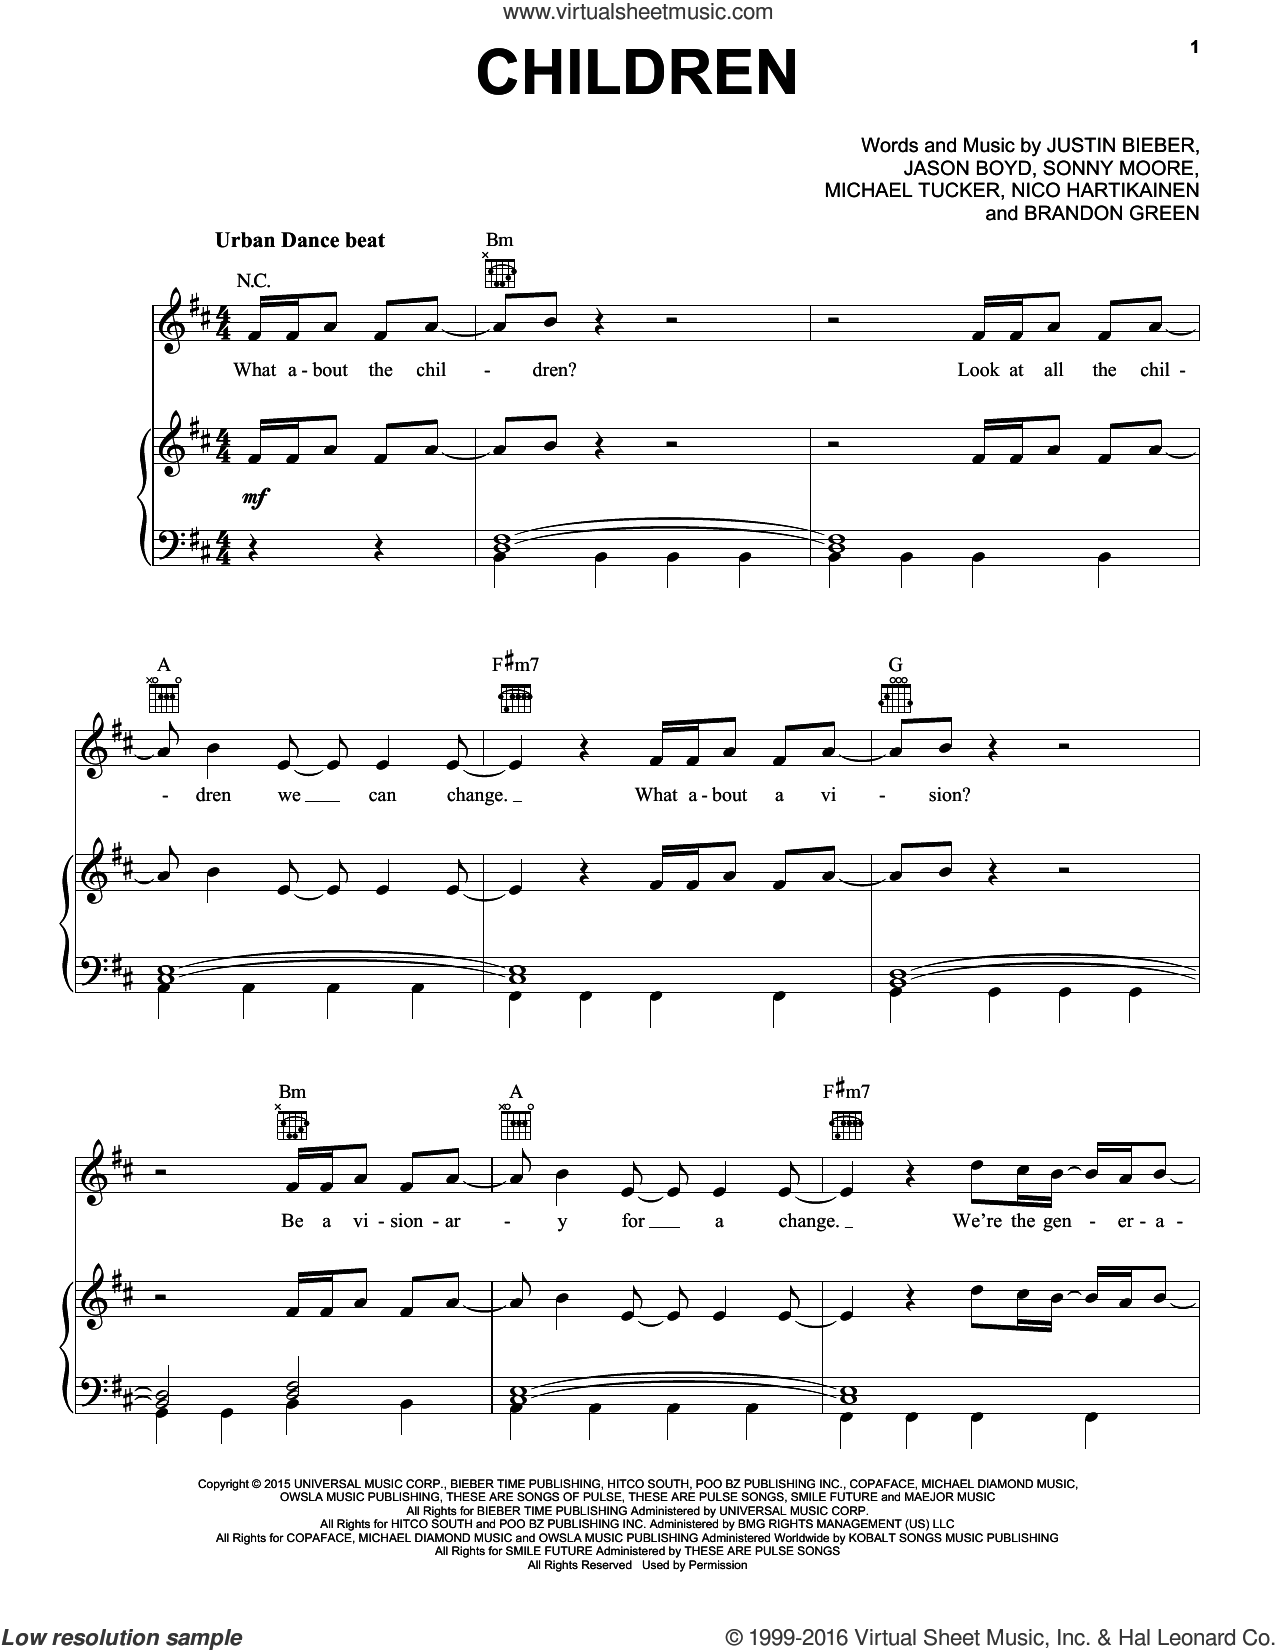 Children sheet music for voice, piano or guitar by Justin Bieber, Brandon Green, Jason Boyd, Michael Tucker, Nico Hartikainen and Sonny Moore, intermediate skill level